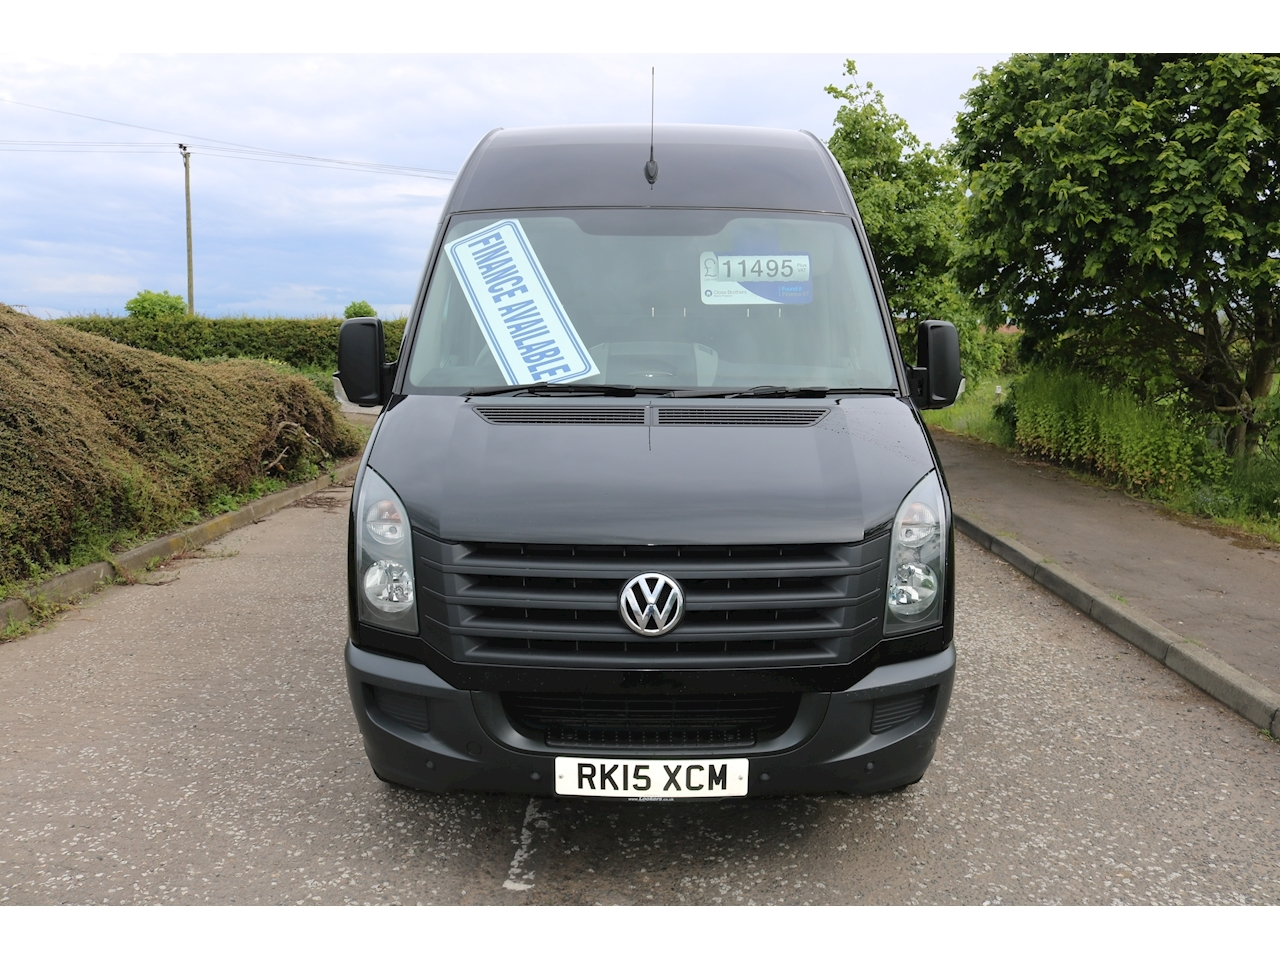 Crafter Cr35 Tdi H/R P/V Panel Van 2.0 Manual Diesel